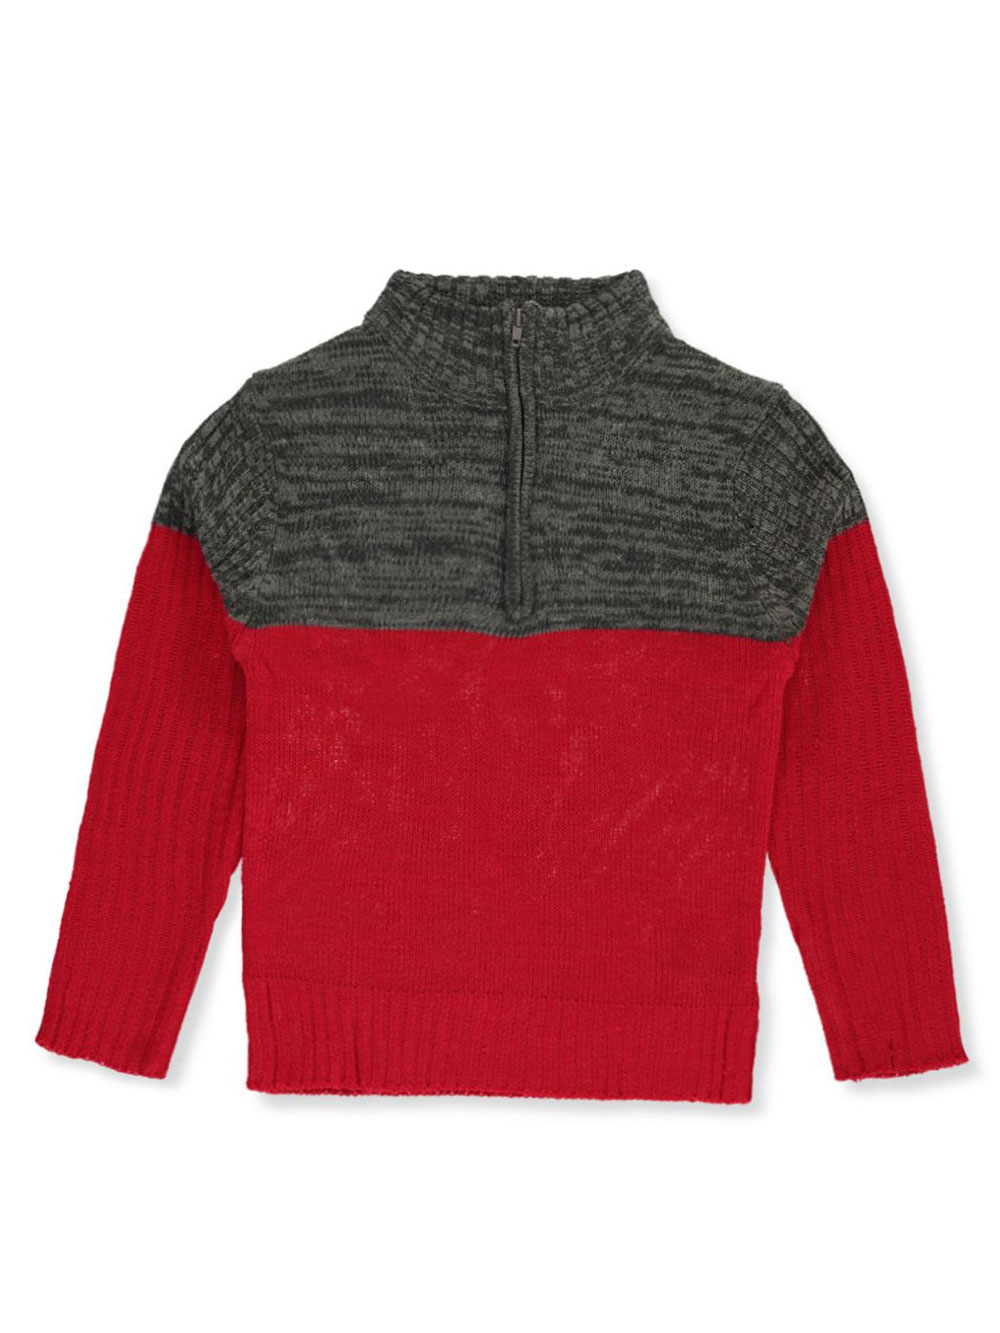 Size 3t Sweaters for Boys